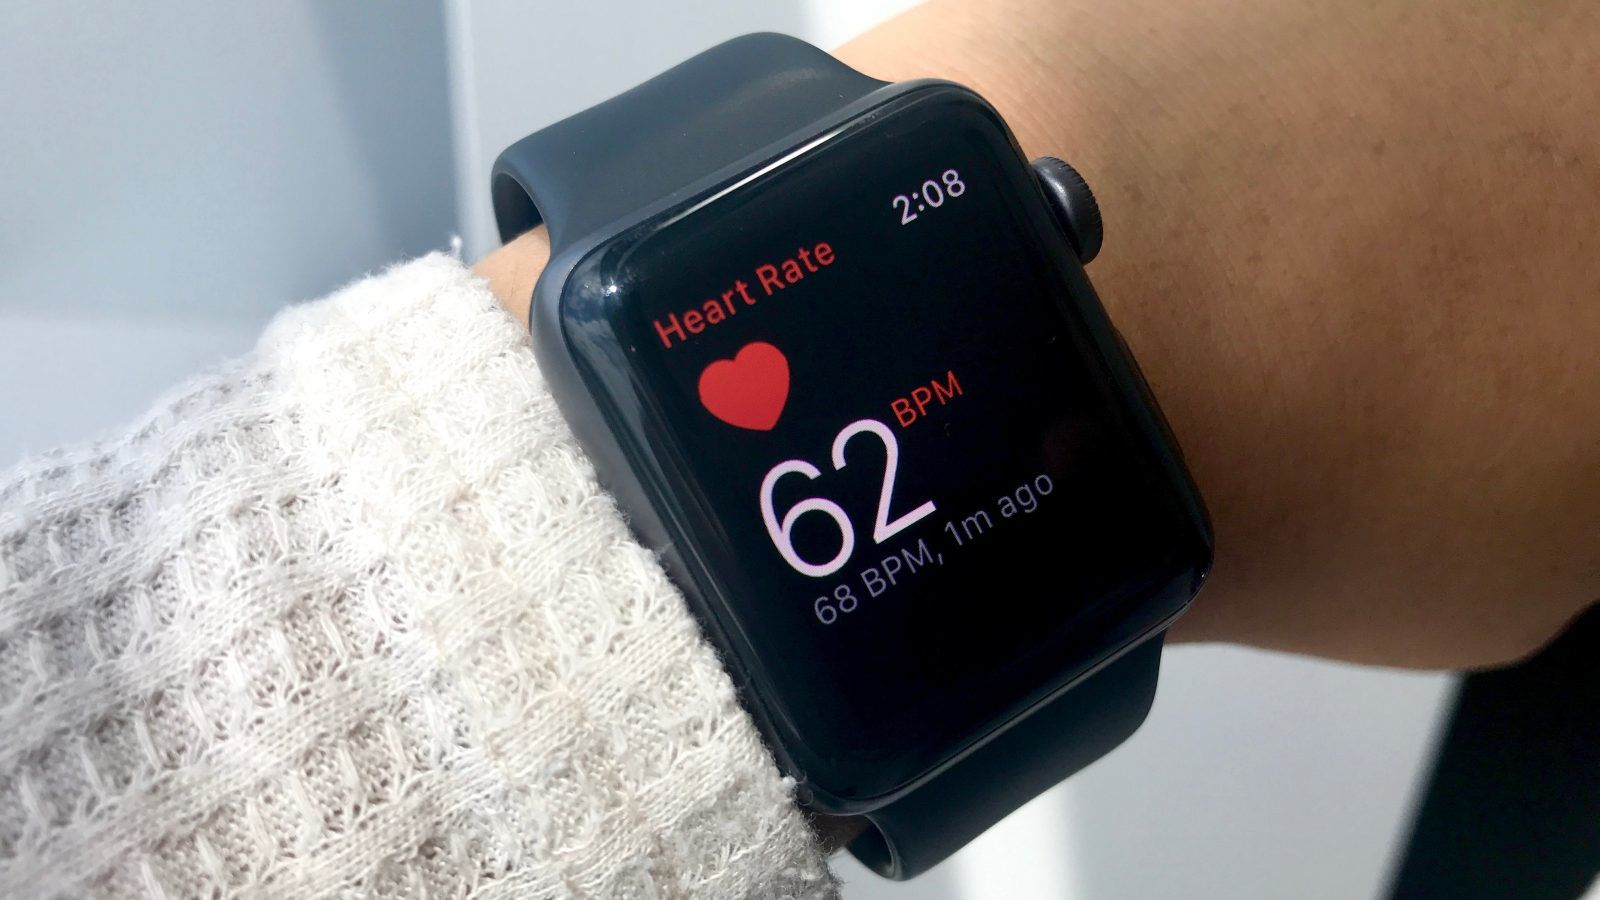 When you open Heart Rate app it shows your heart rate in real time.